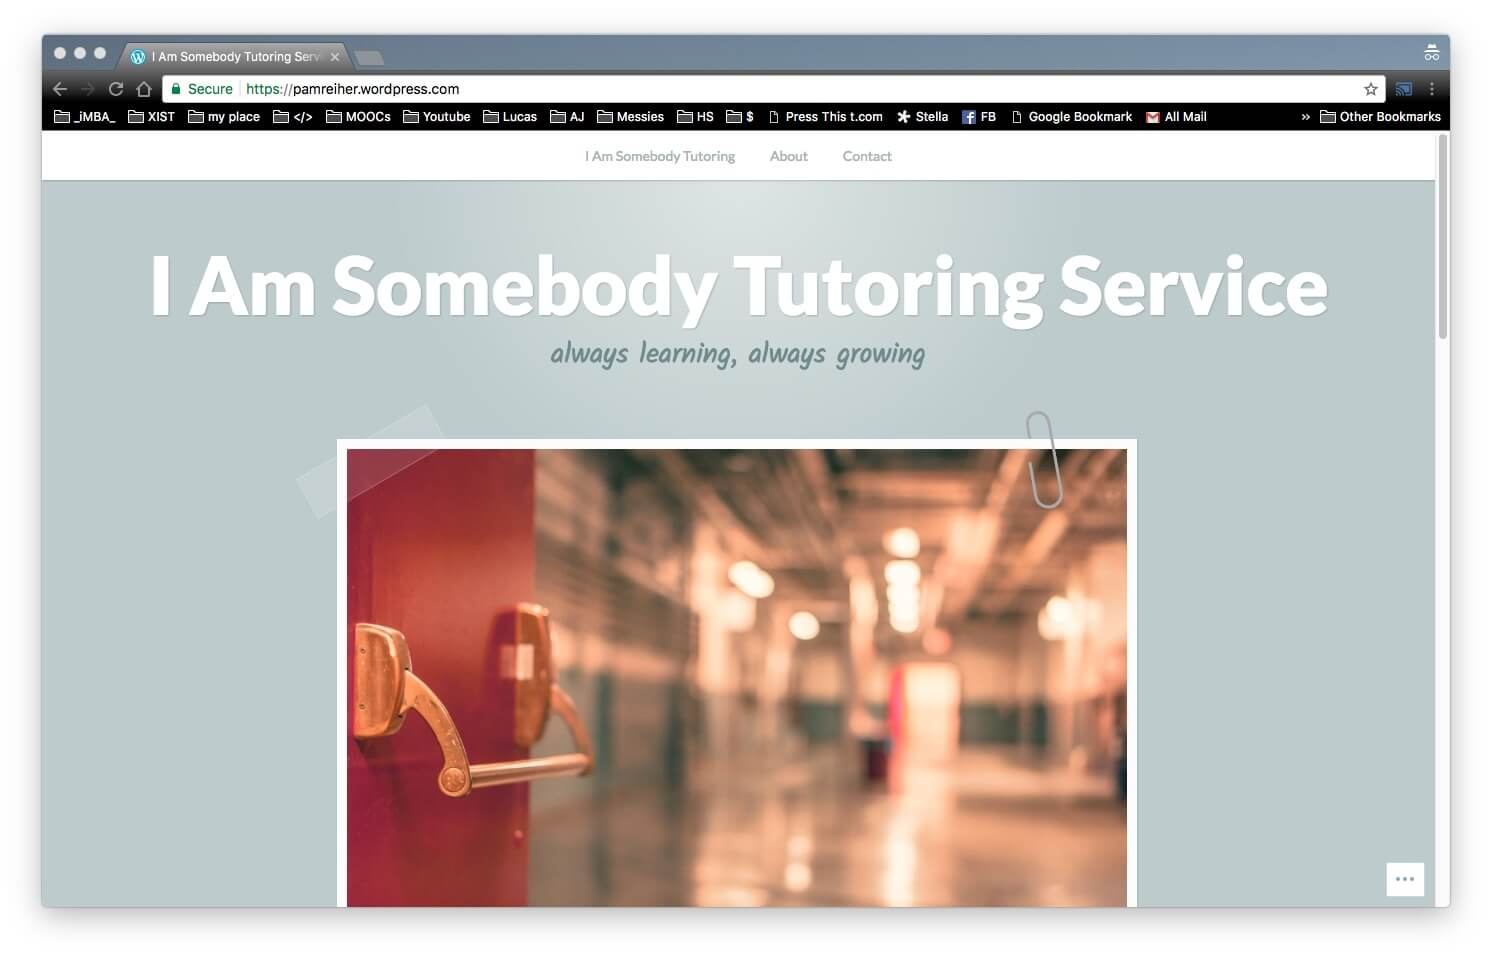 I-Am_Somebody_Tutoring-Service